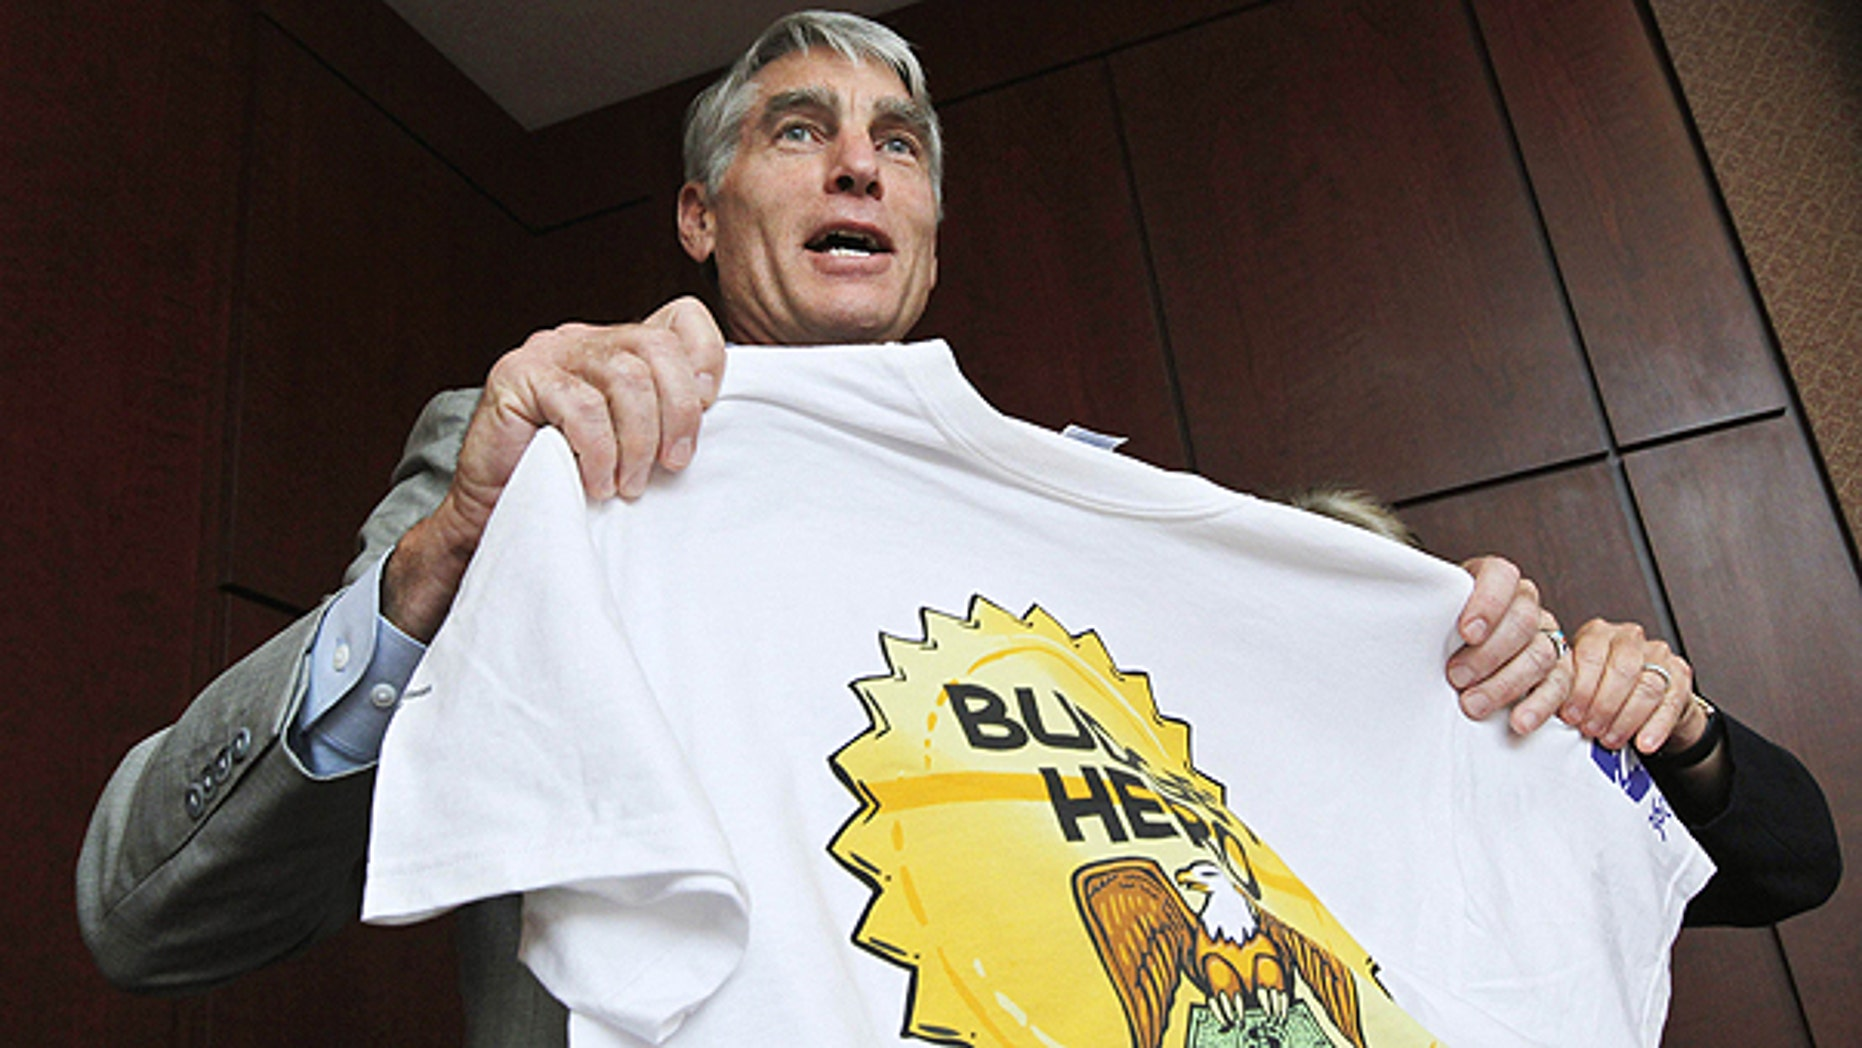 """July 13: Sen. Mark Udall, D-Colo., shows his Budget Hero shirt at the Wilson Center's re-launching of the """"Budget Game"""" on Capitol Hill in Washington."""